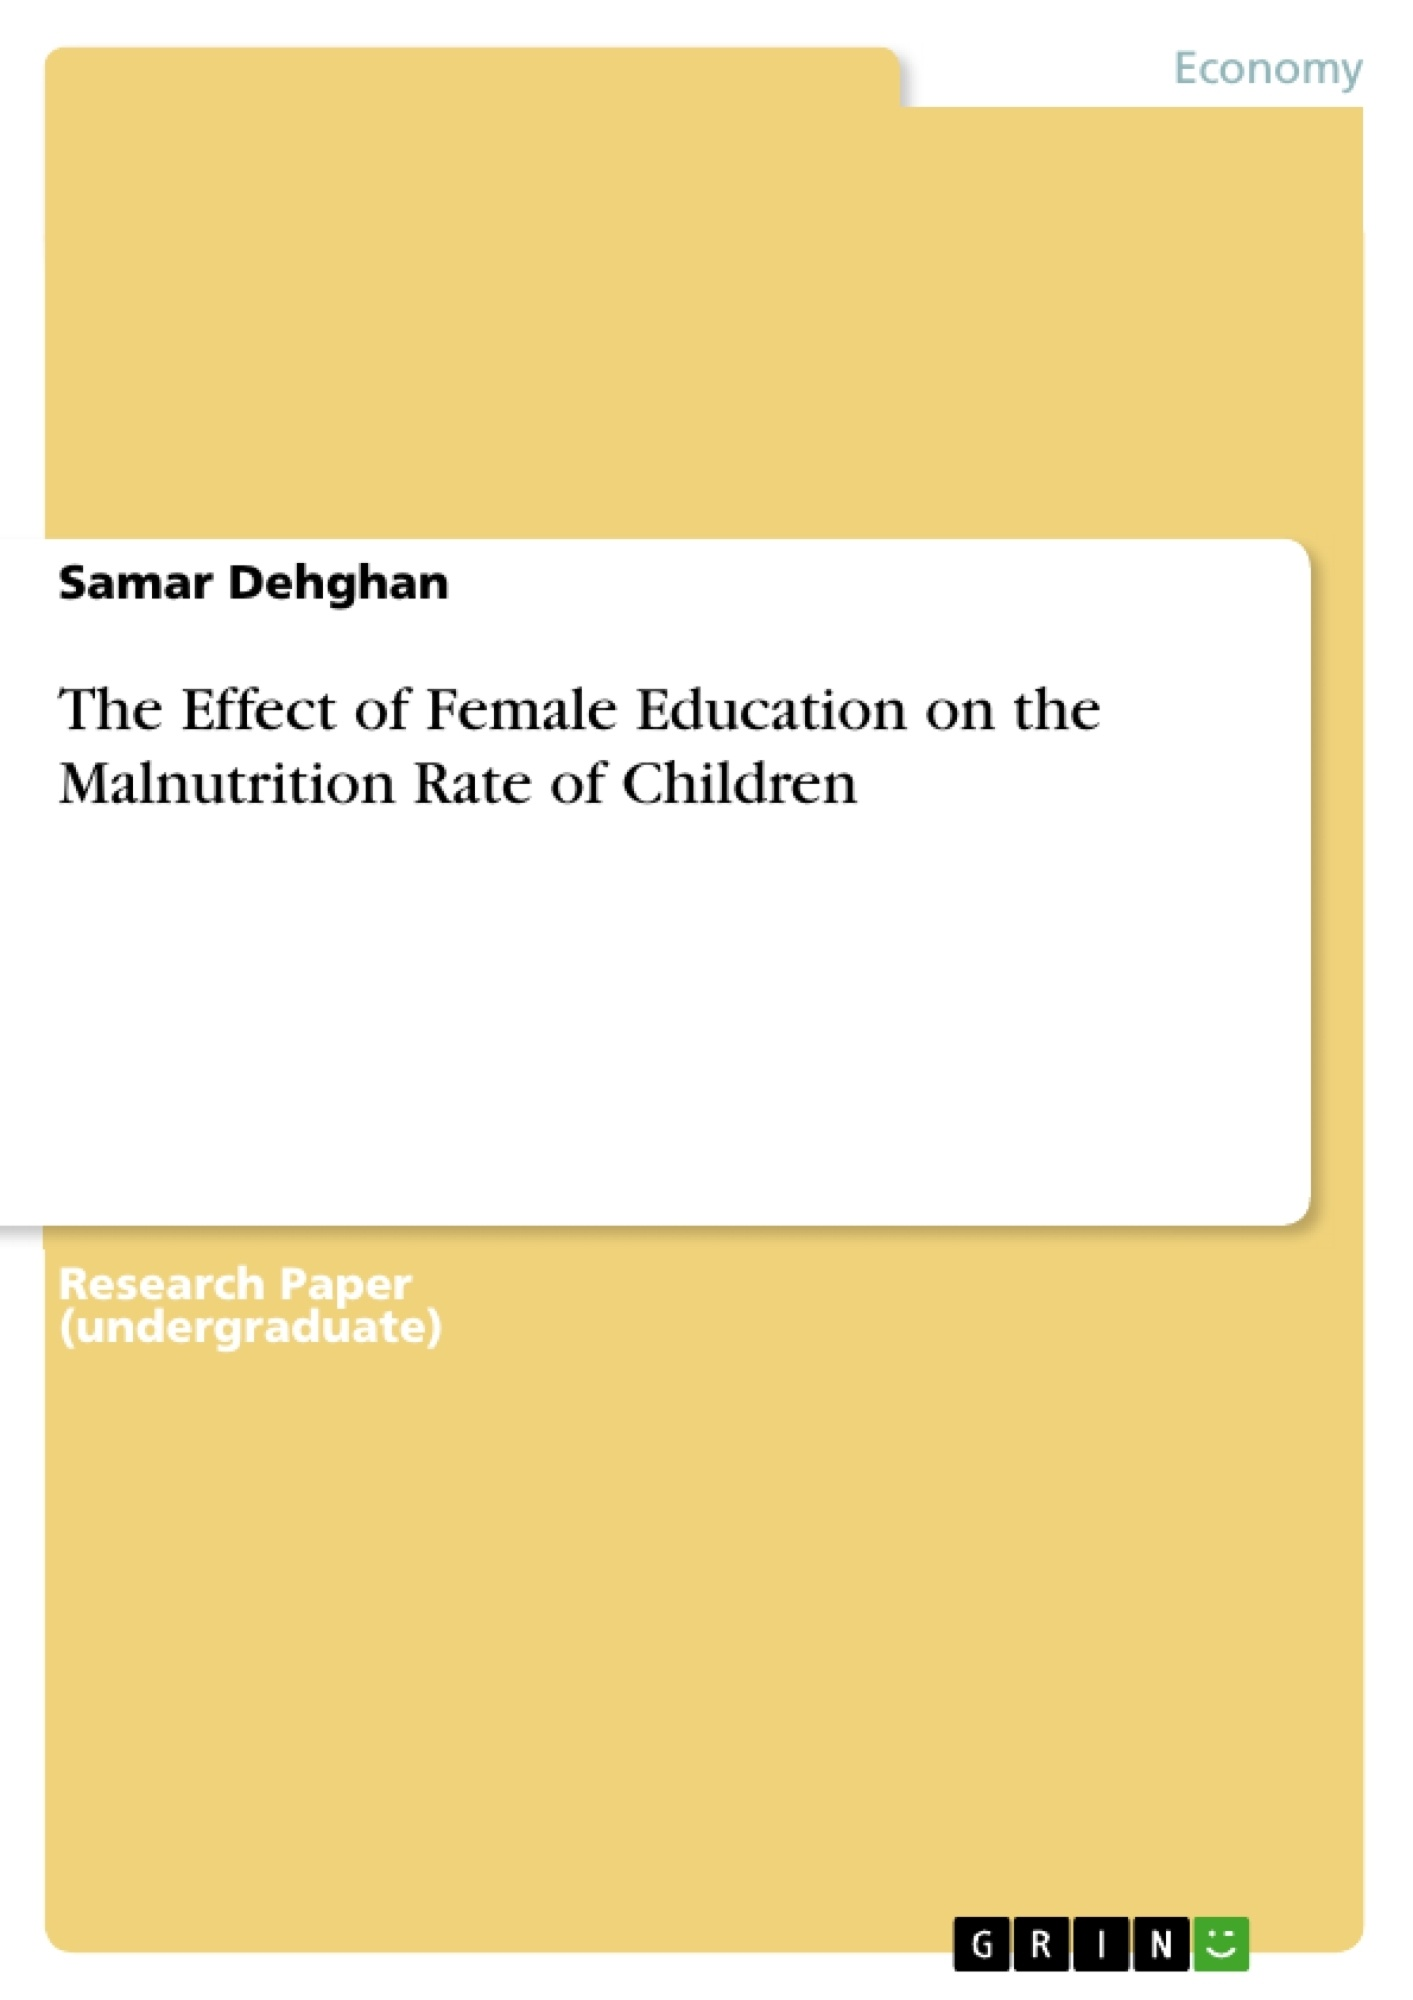 Title: The Effect of Female Education on the Malnutrition Rate of Children